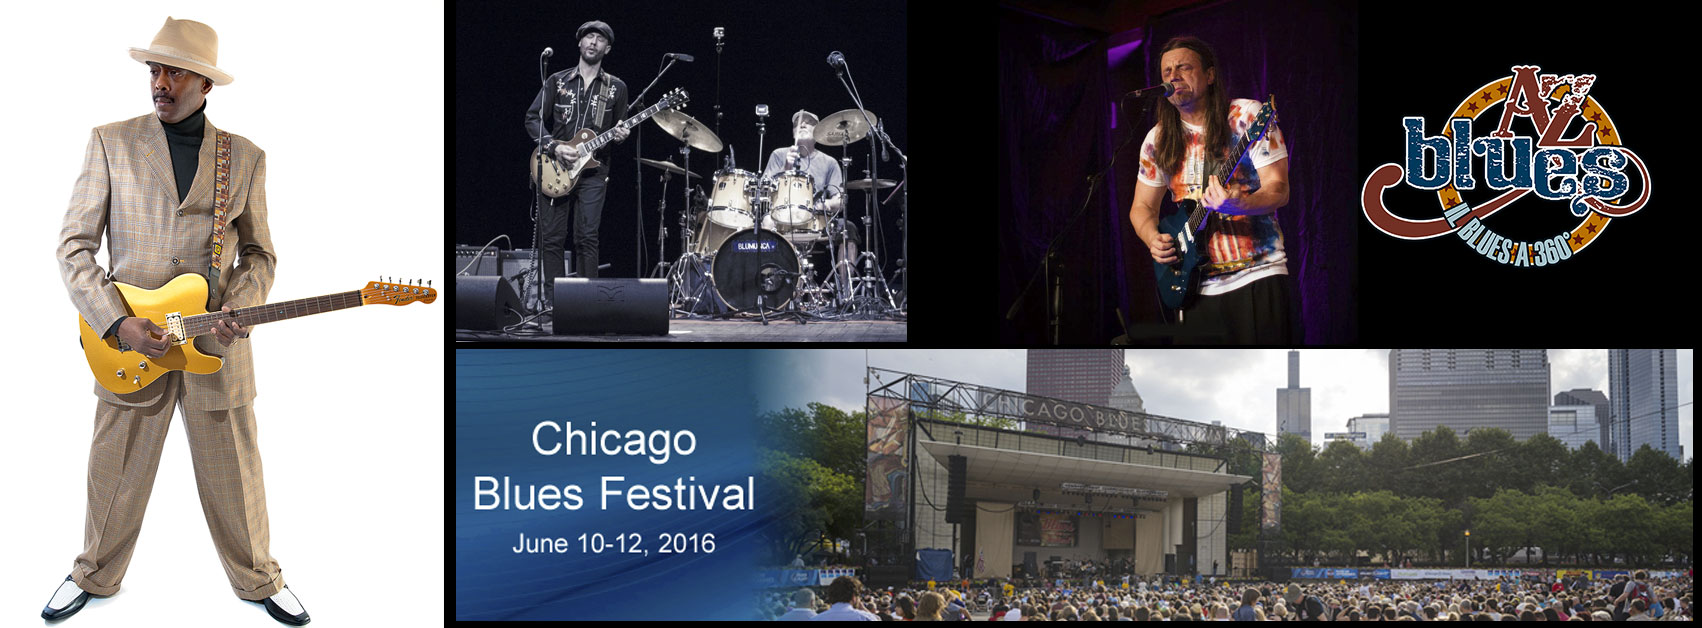 A-Z-Blues-al-Chicago-Blues-Festival-2016